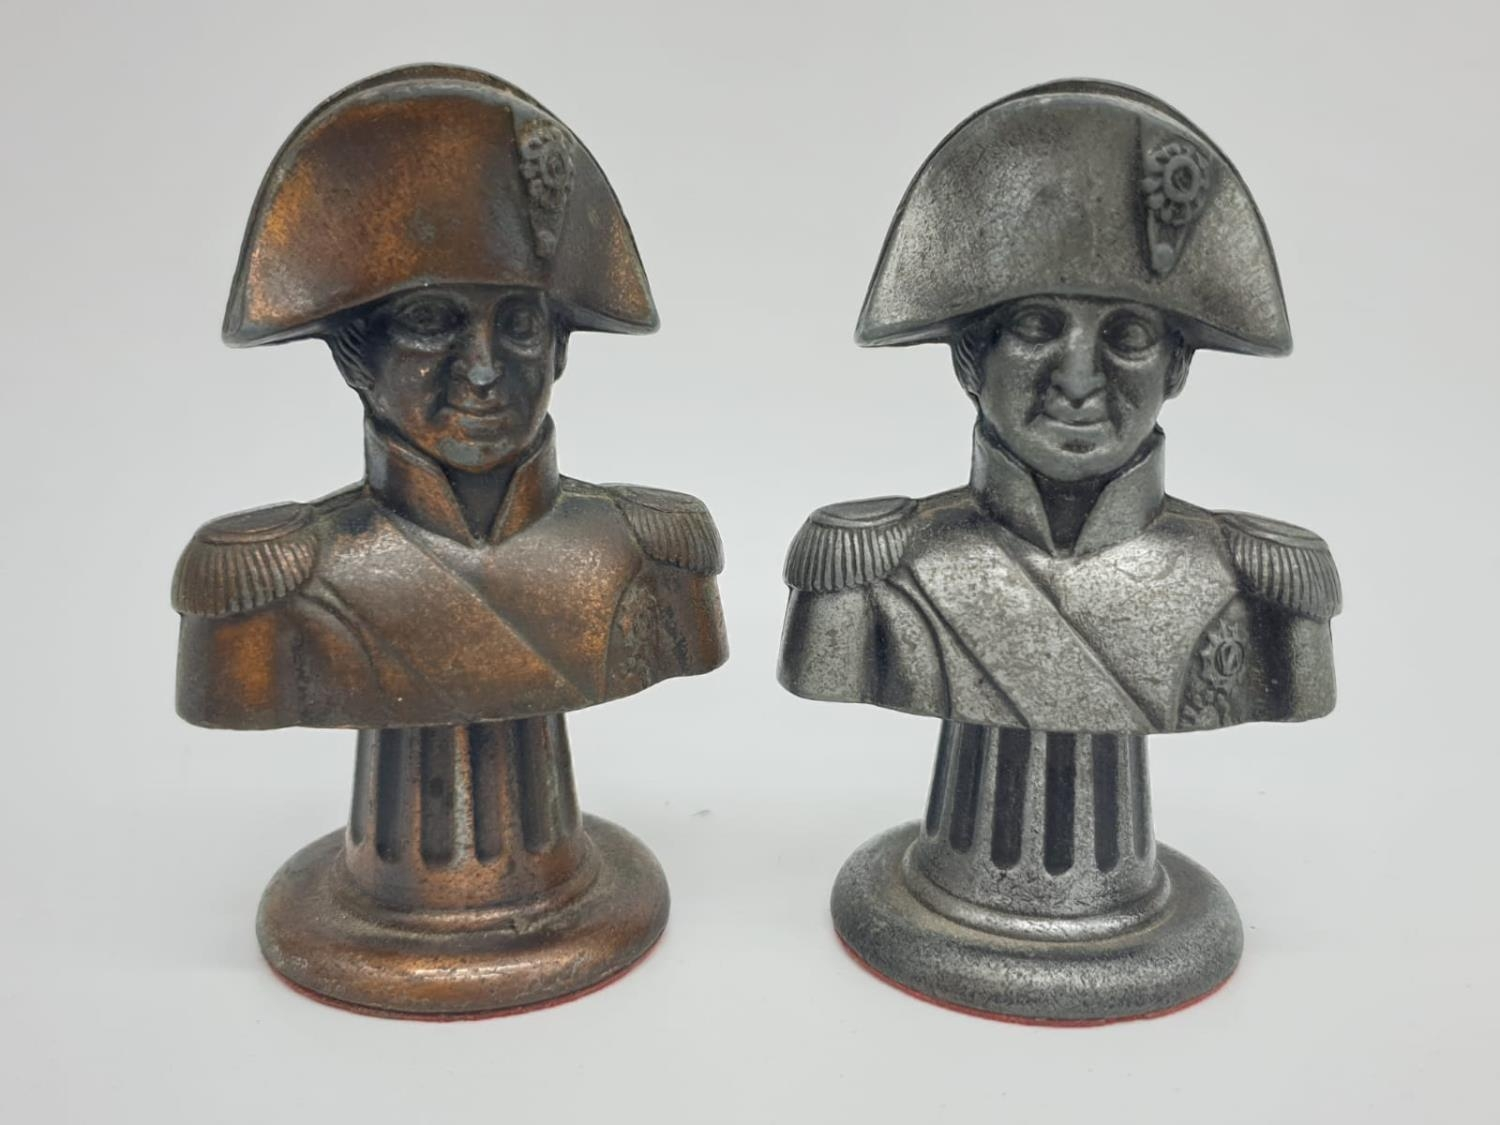 Metal CHESS SET Napoleonic Themed pieces. Napoleon 7.5 cm tall. Play on a square 3.5 cm. - Image 20 of 38